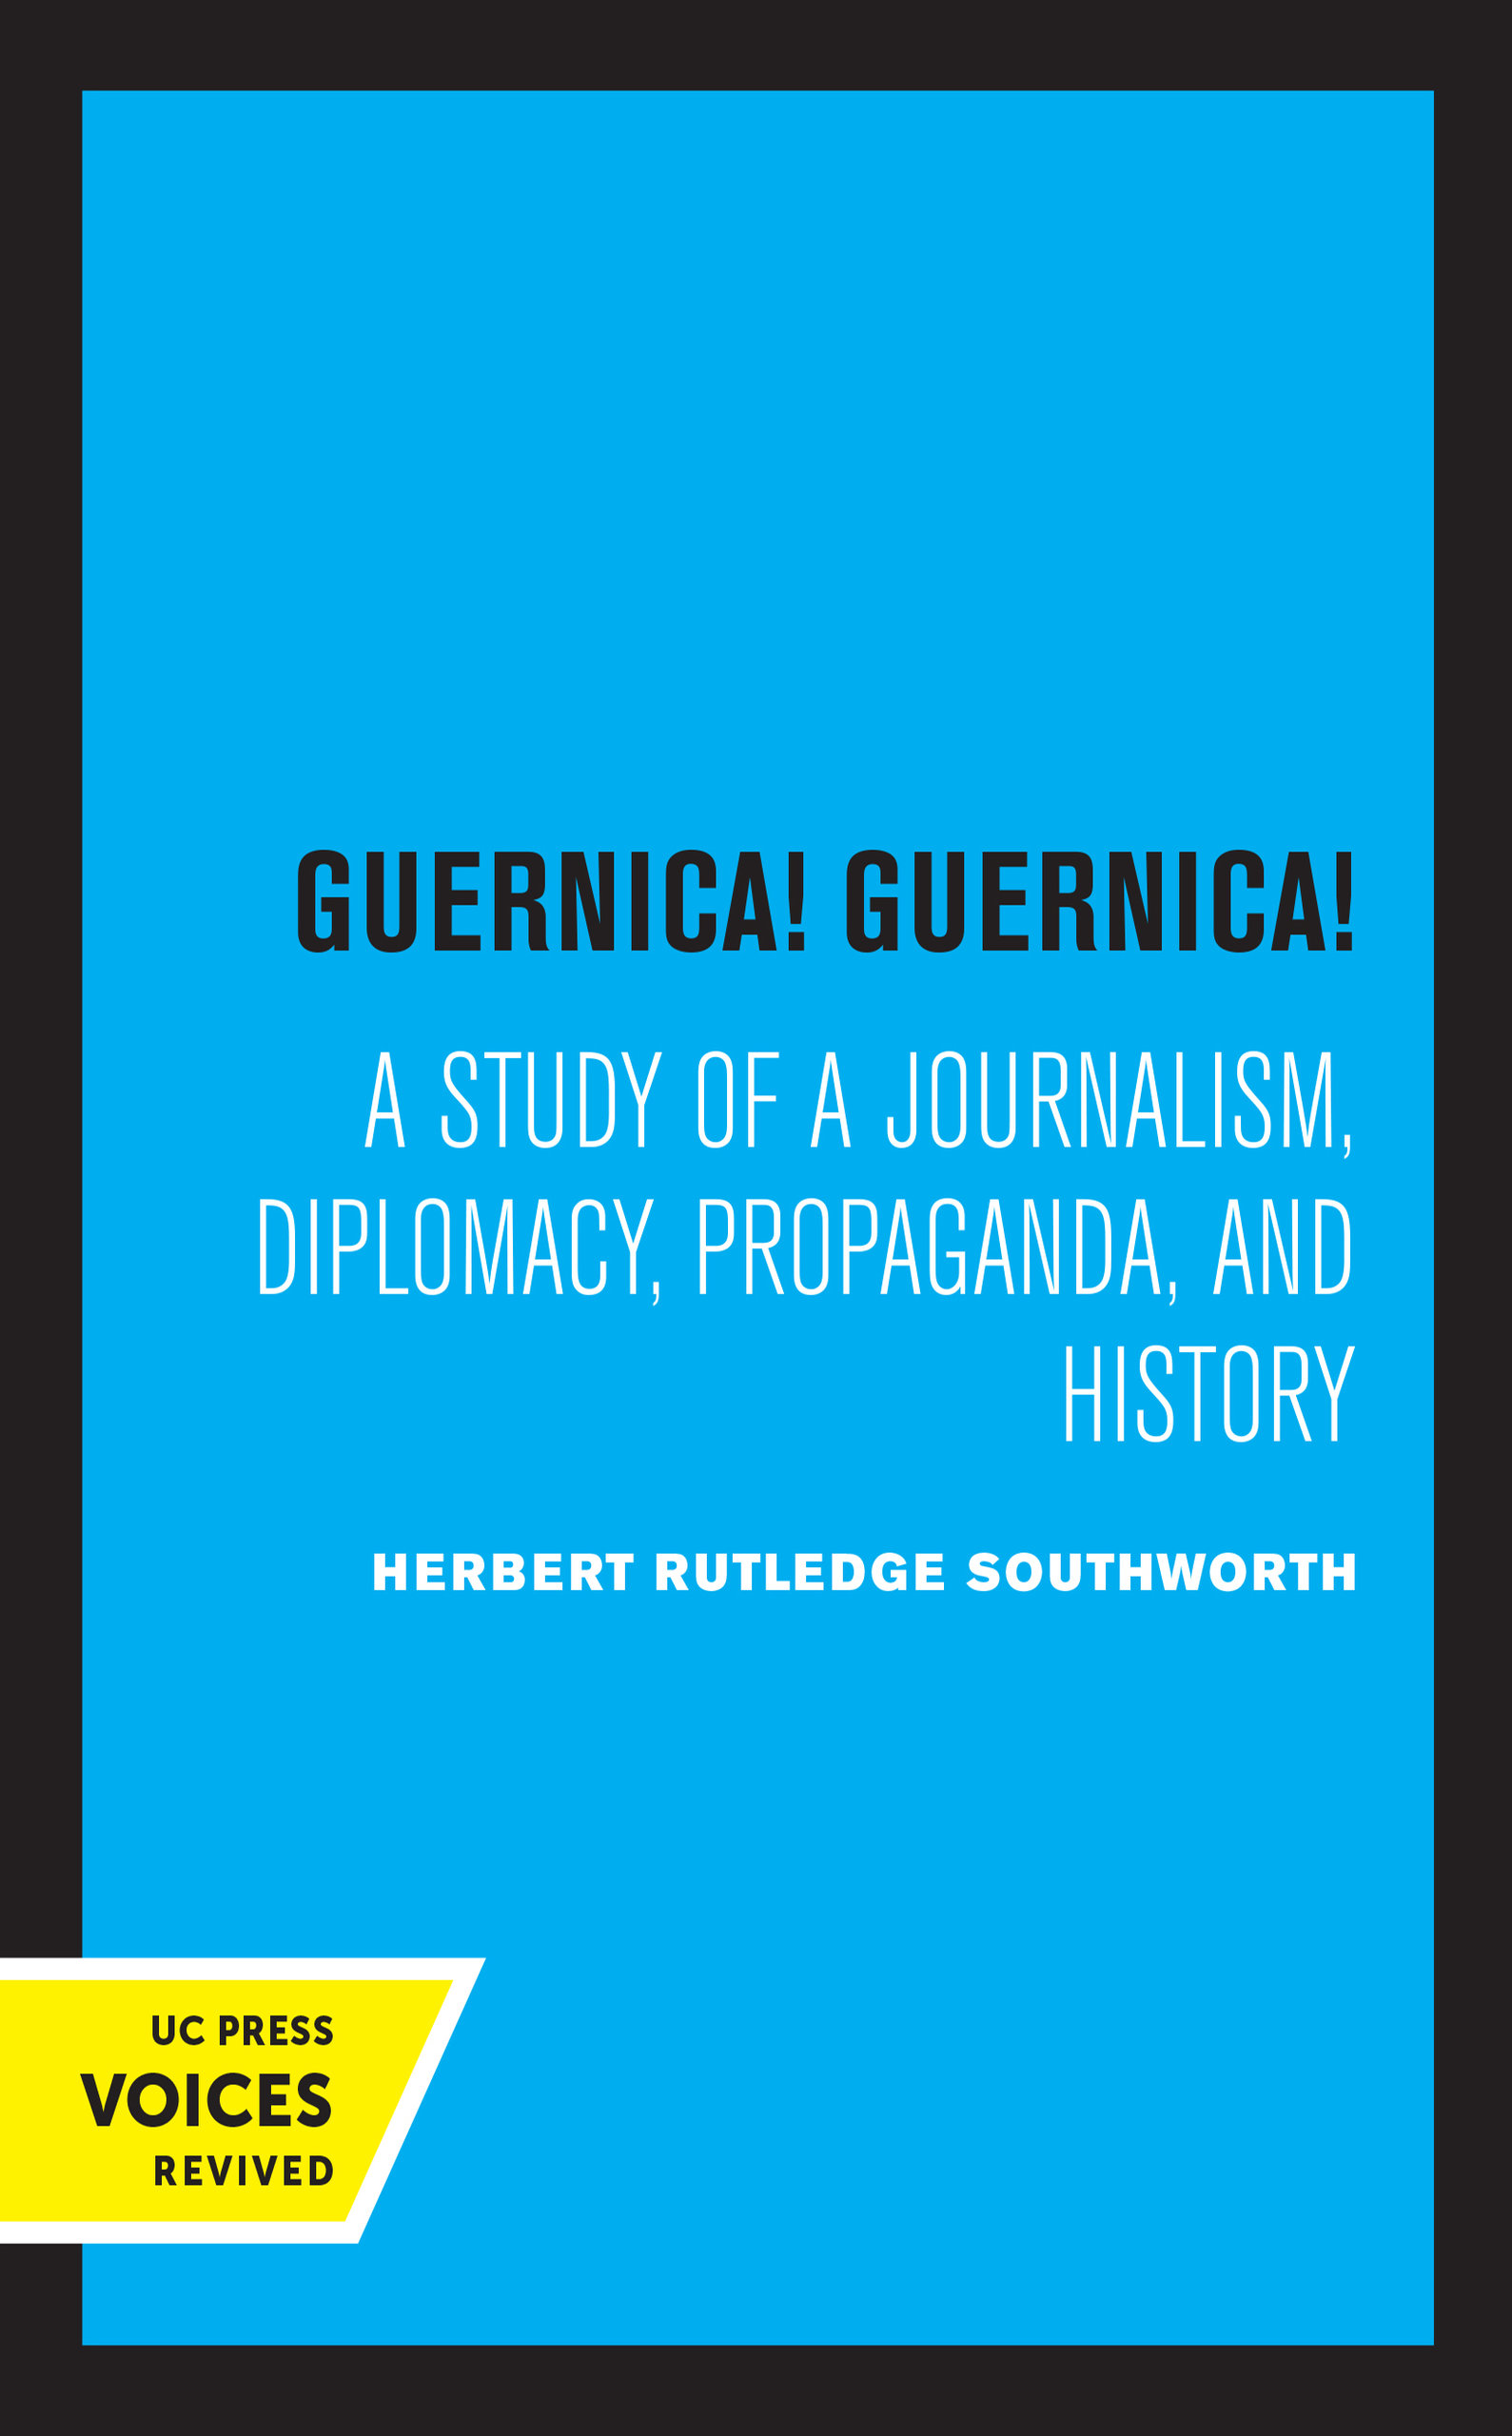 Guernica! Guernica!: A Study of a Journalism, Diplomacy, Propaganda, and History